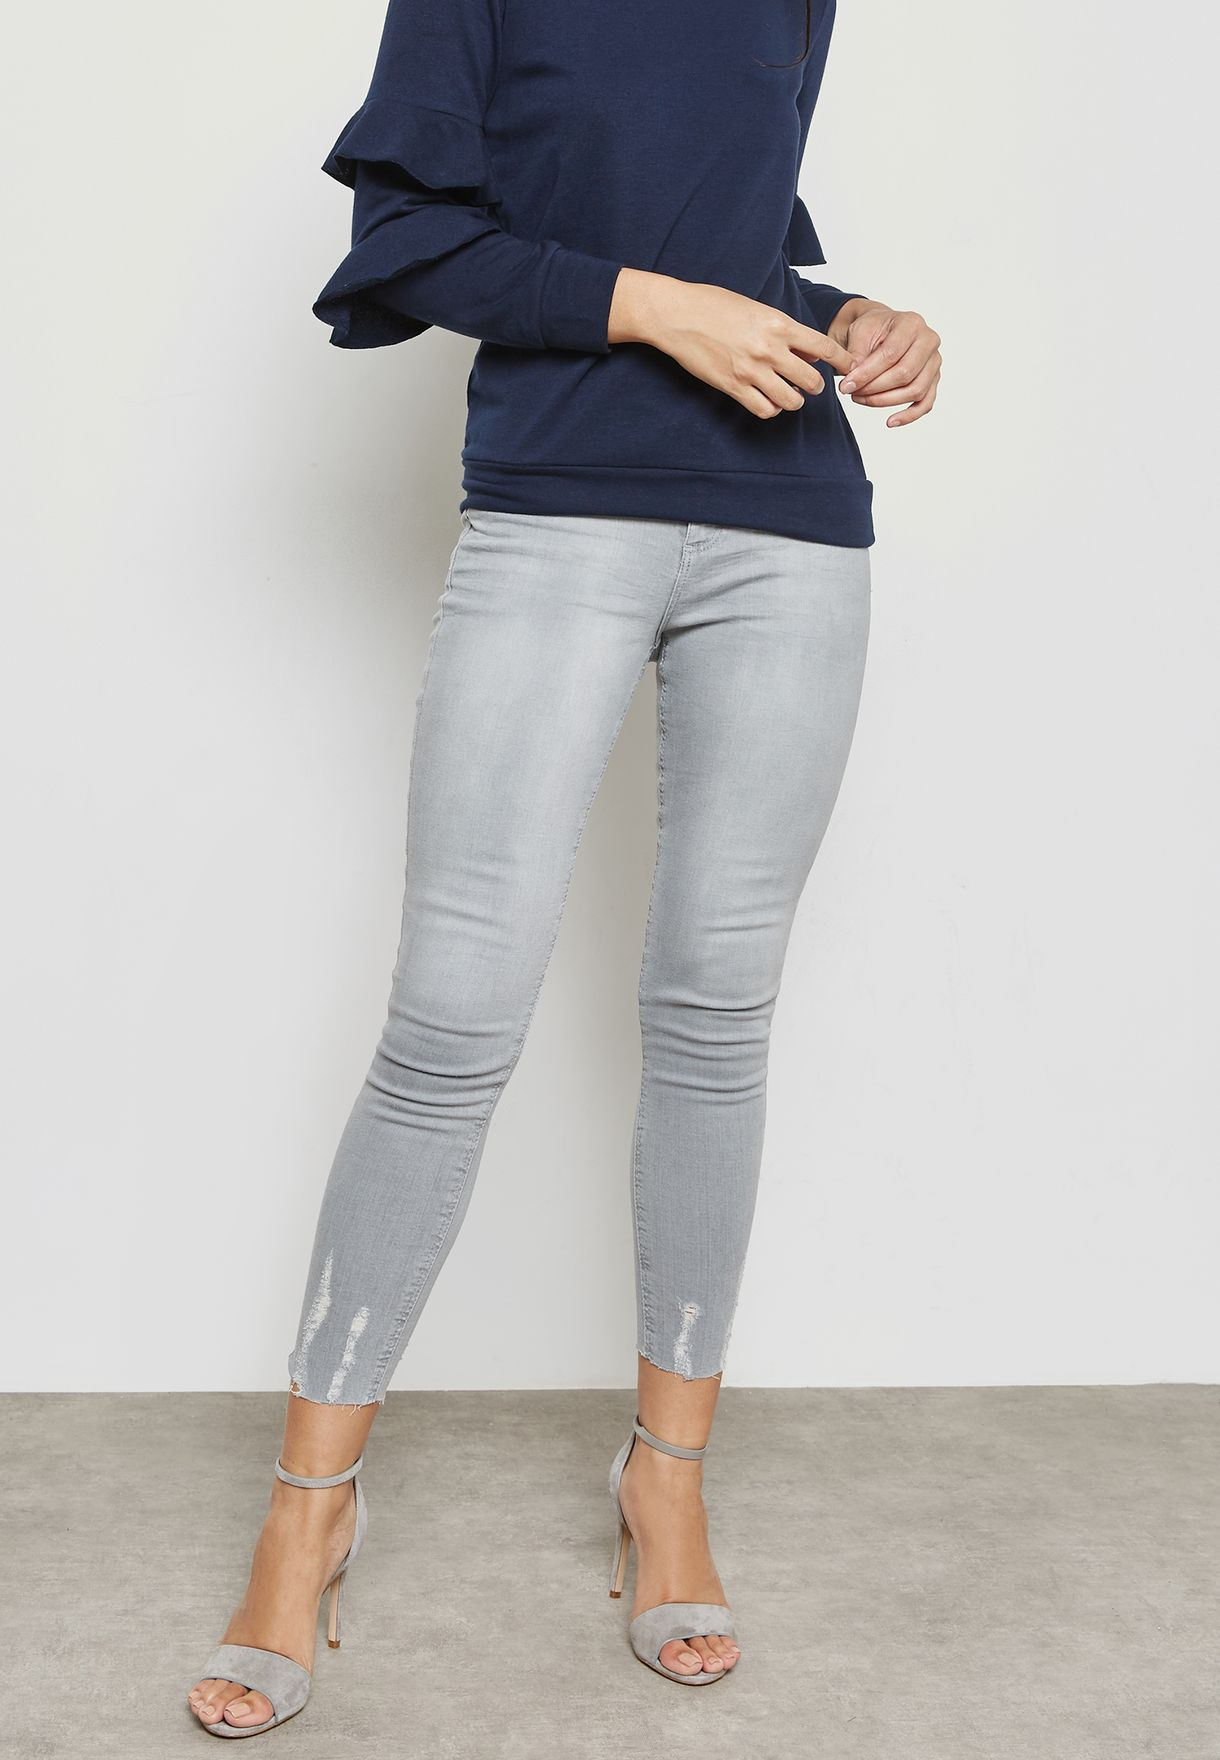 Ankle Grazer Ripped Skinny Jeans